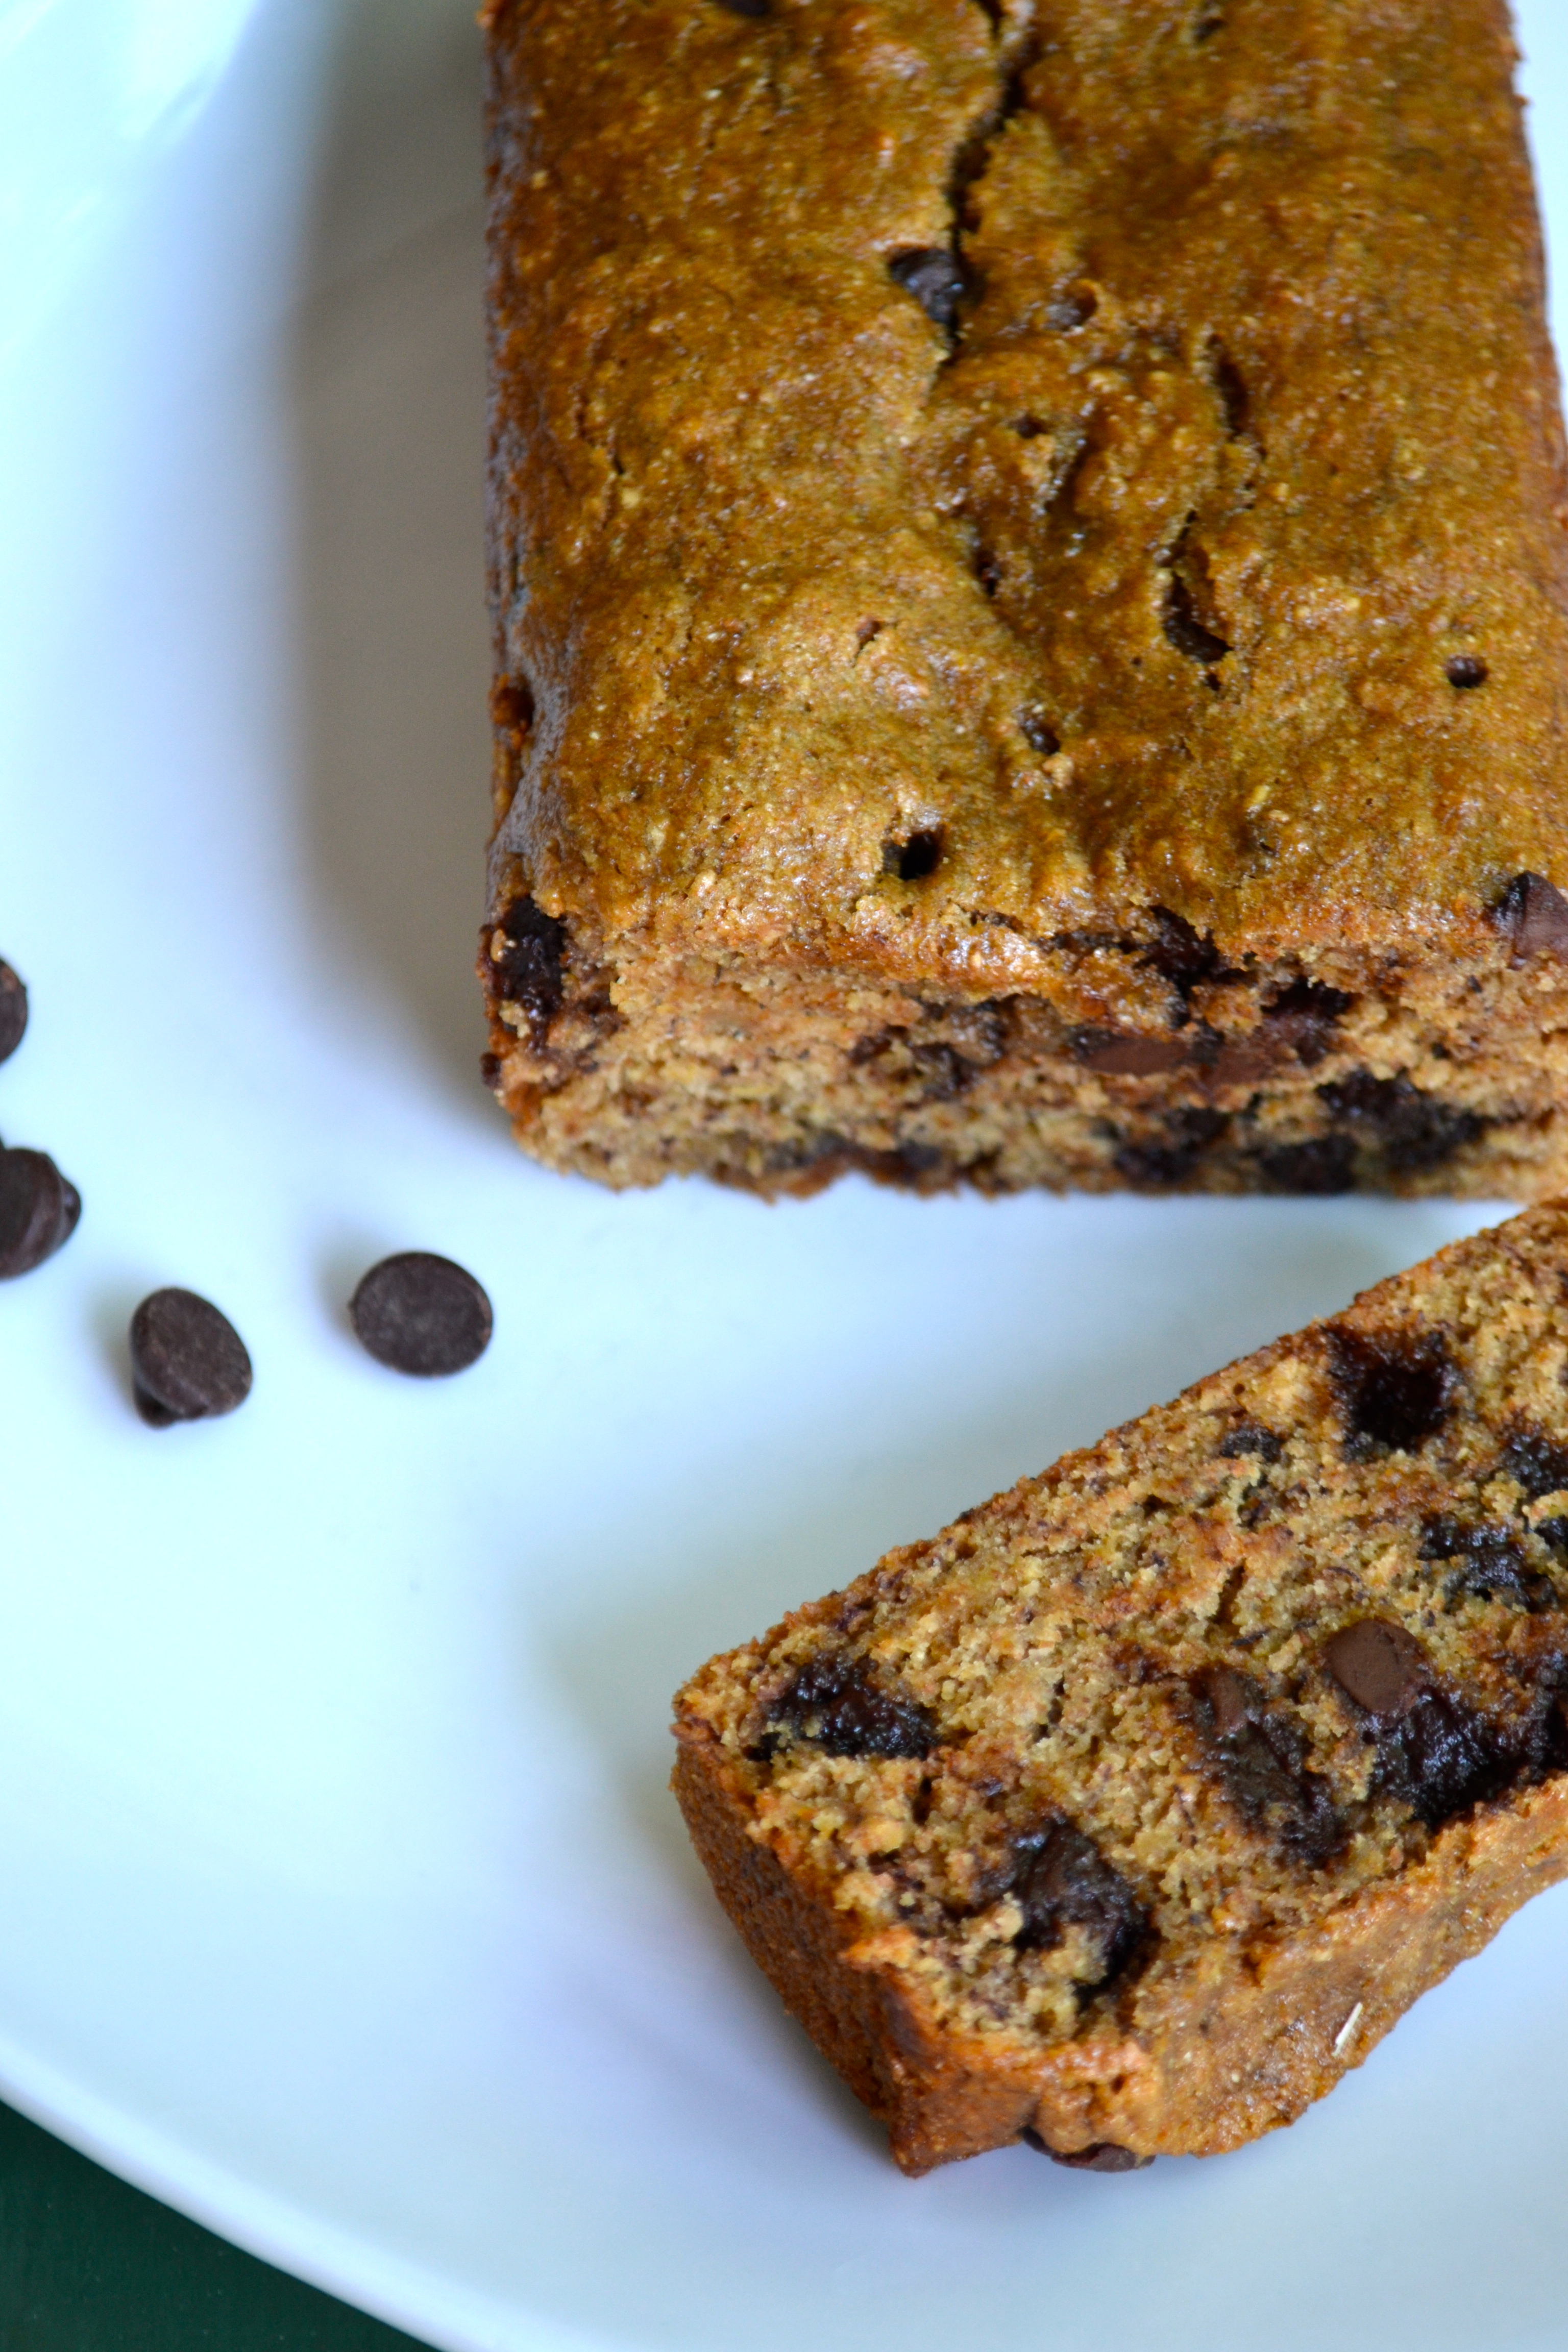 (Skinny) Chocolate Chip Banana Bread | a rented kitchen